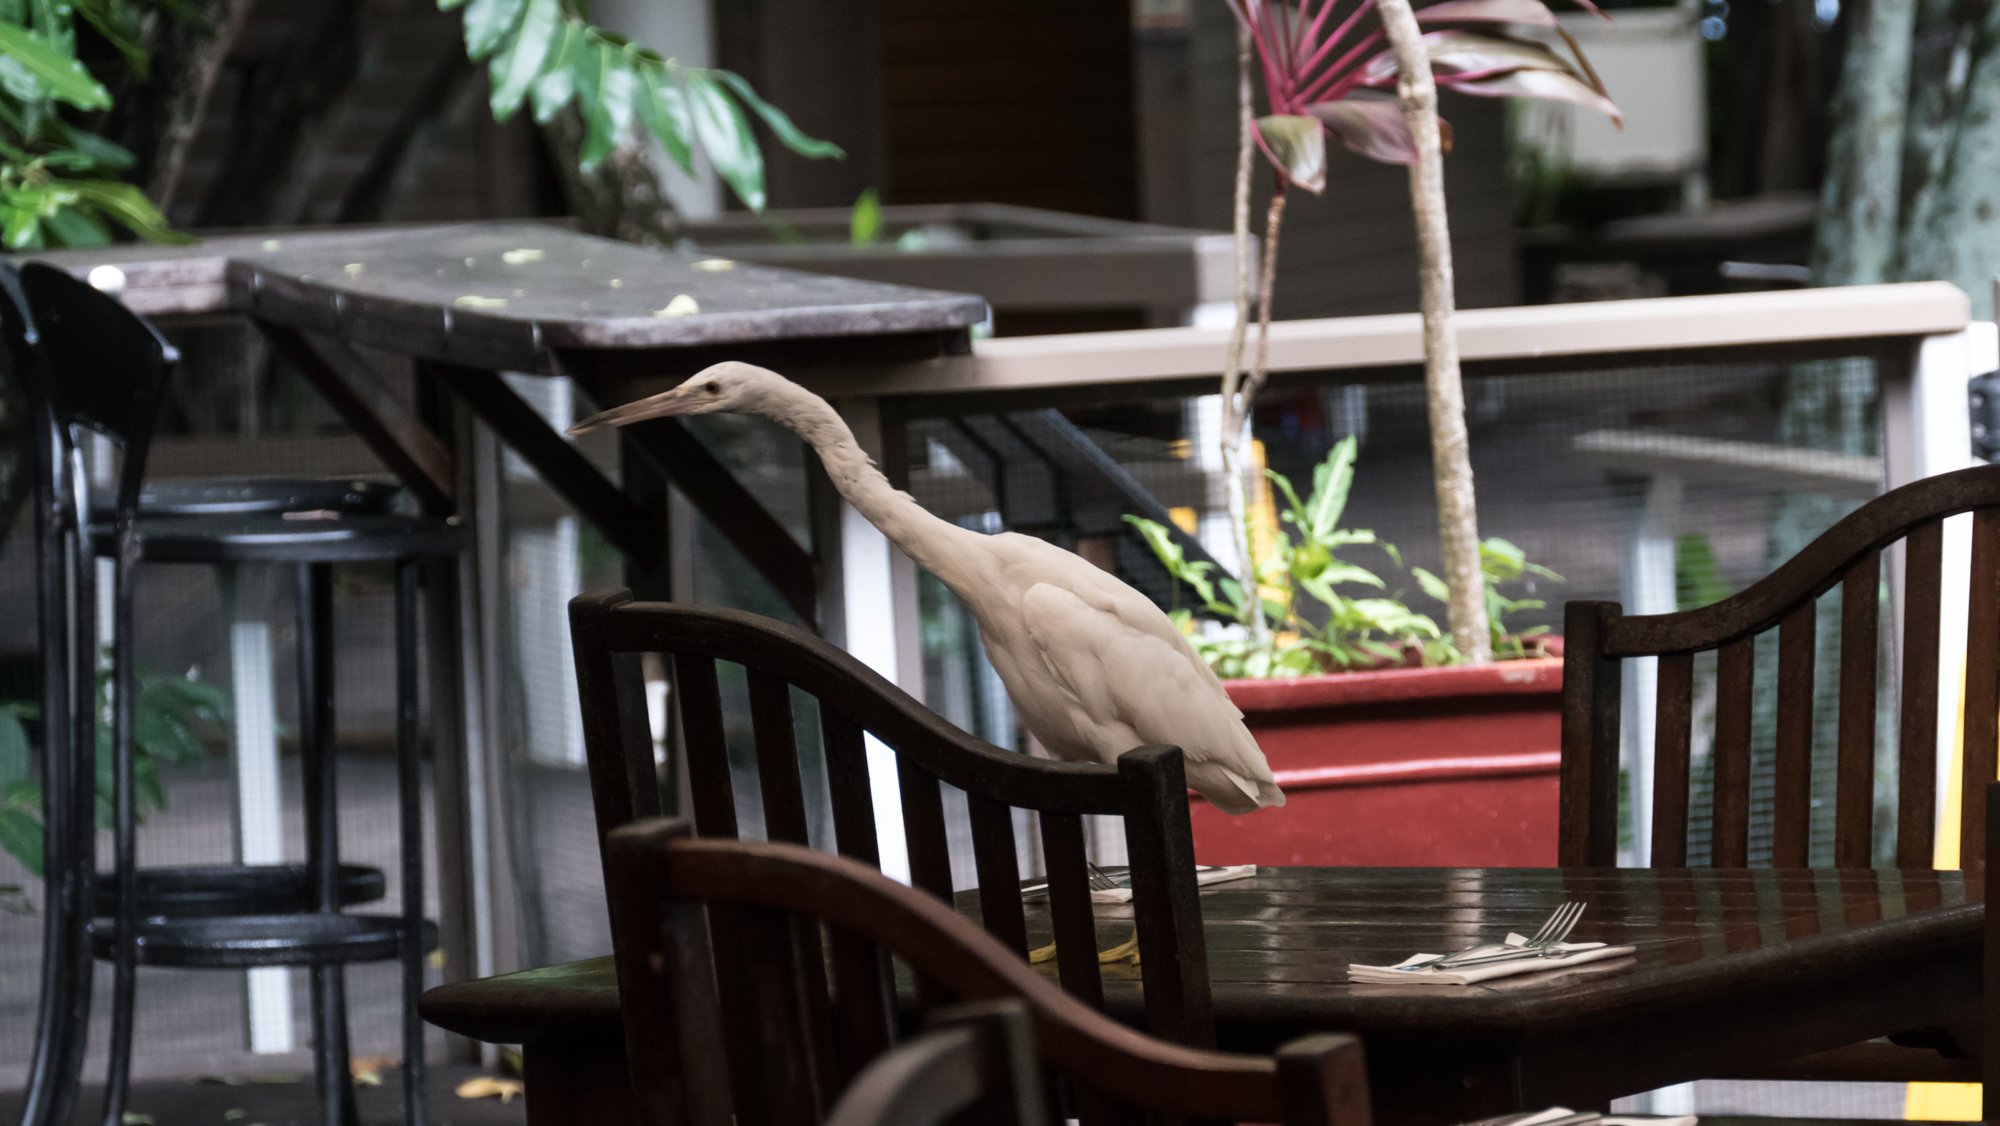 Reef heron arriving early for lunch